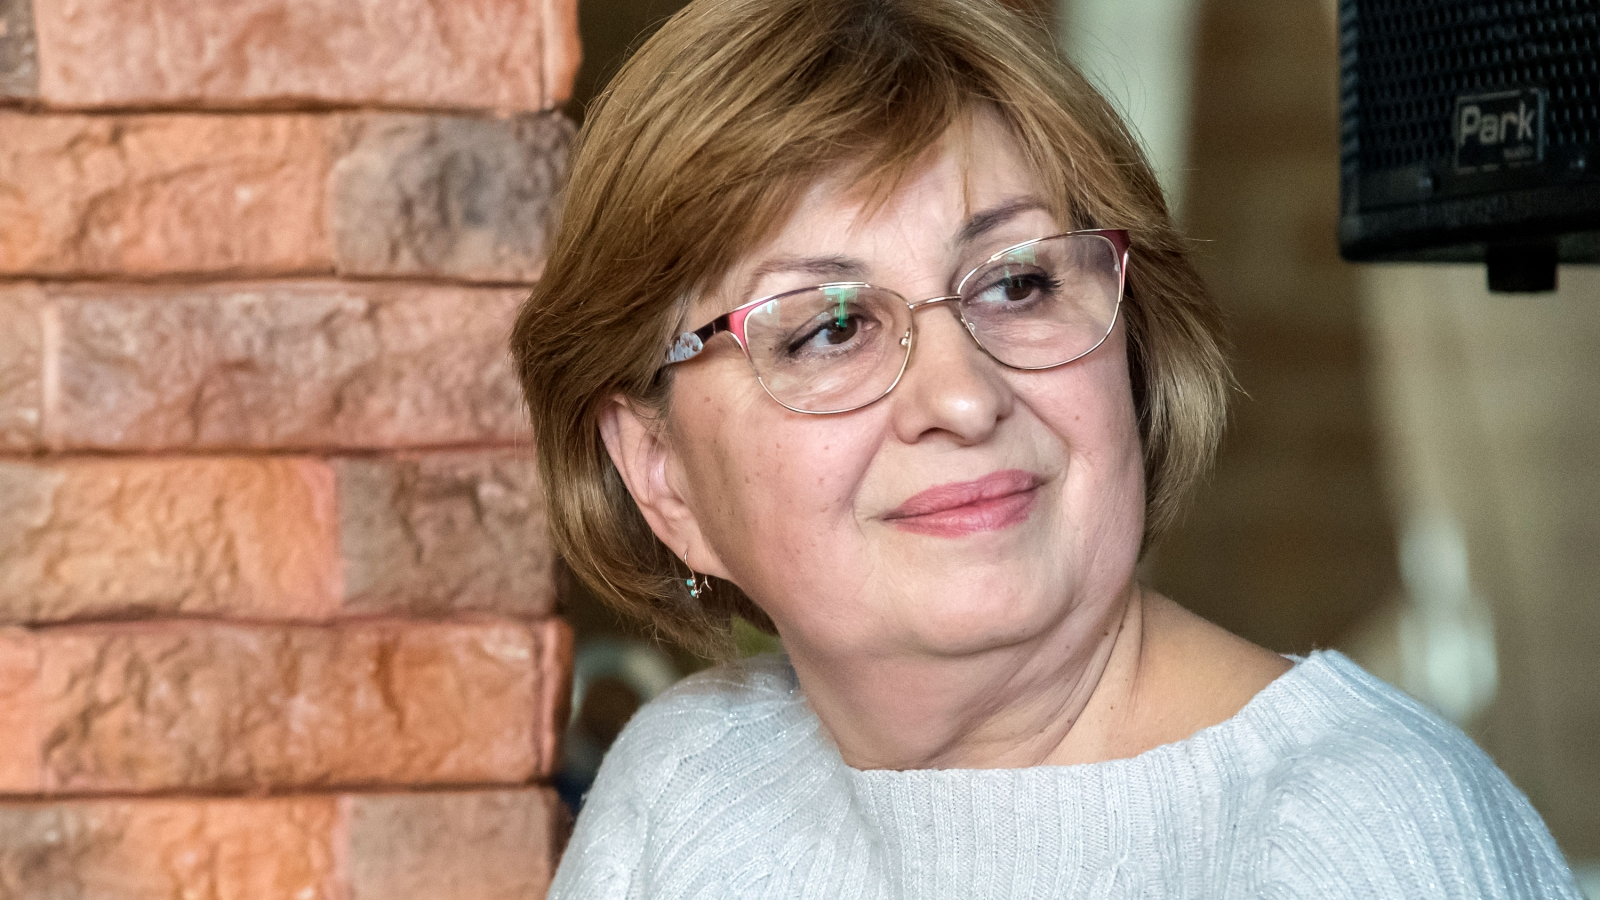 Lyudmyla Gallina, Chairman of the association of co-owners of an apartment building that was insulated in Zhytomyr